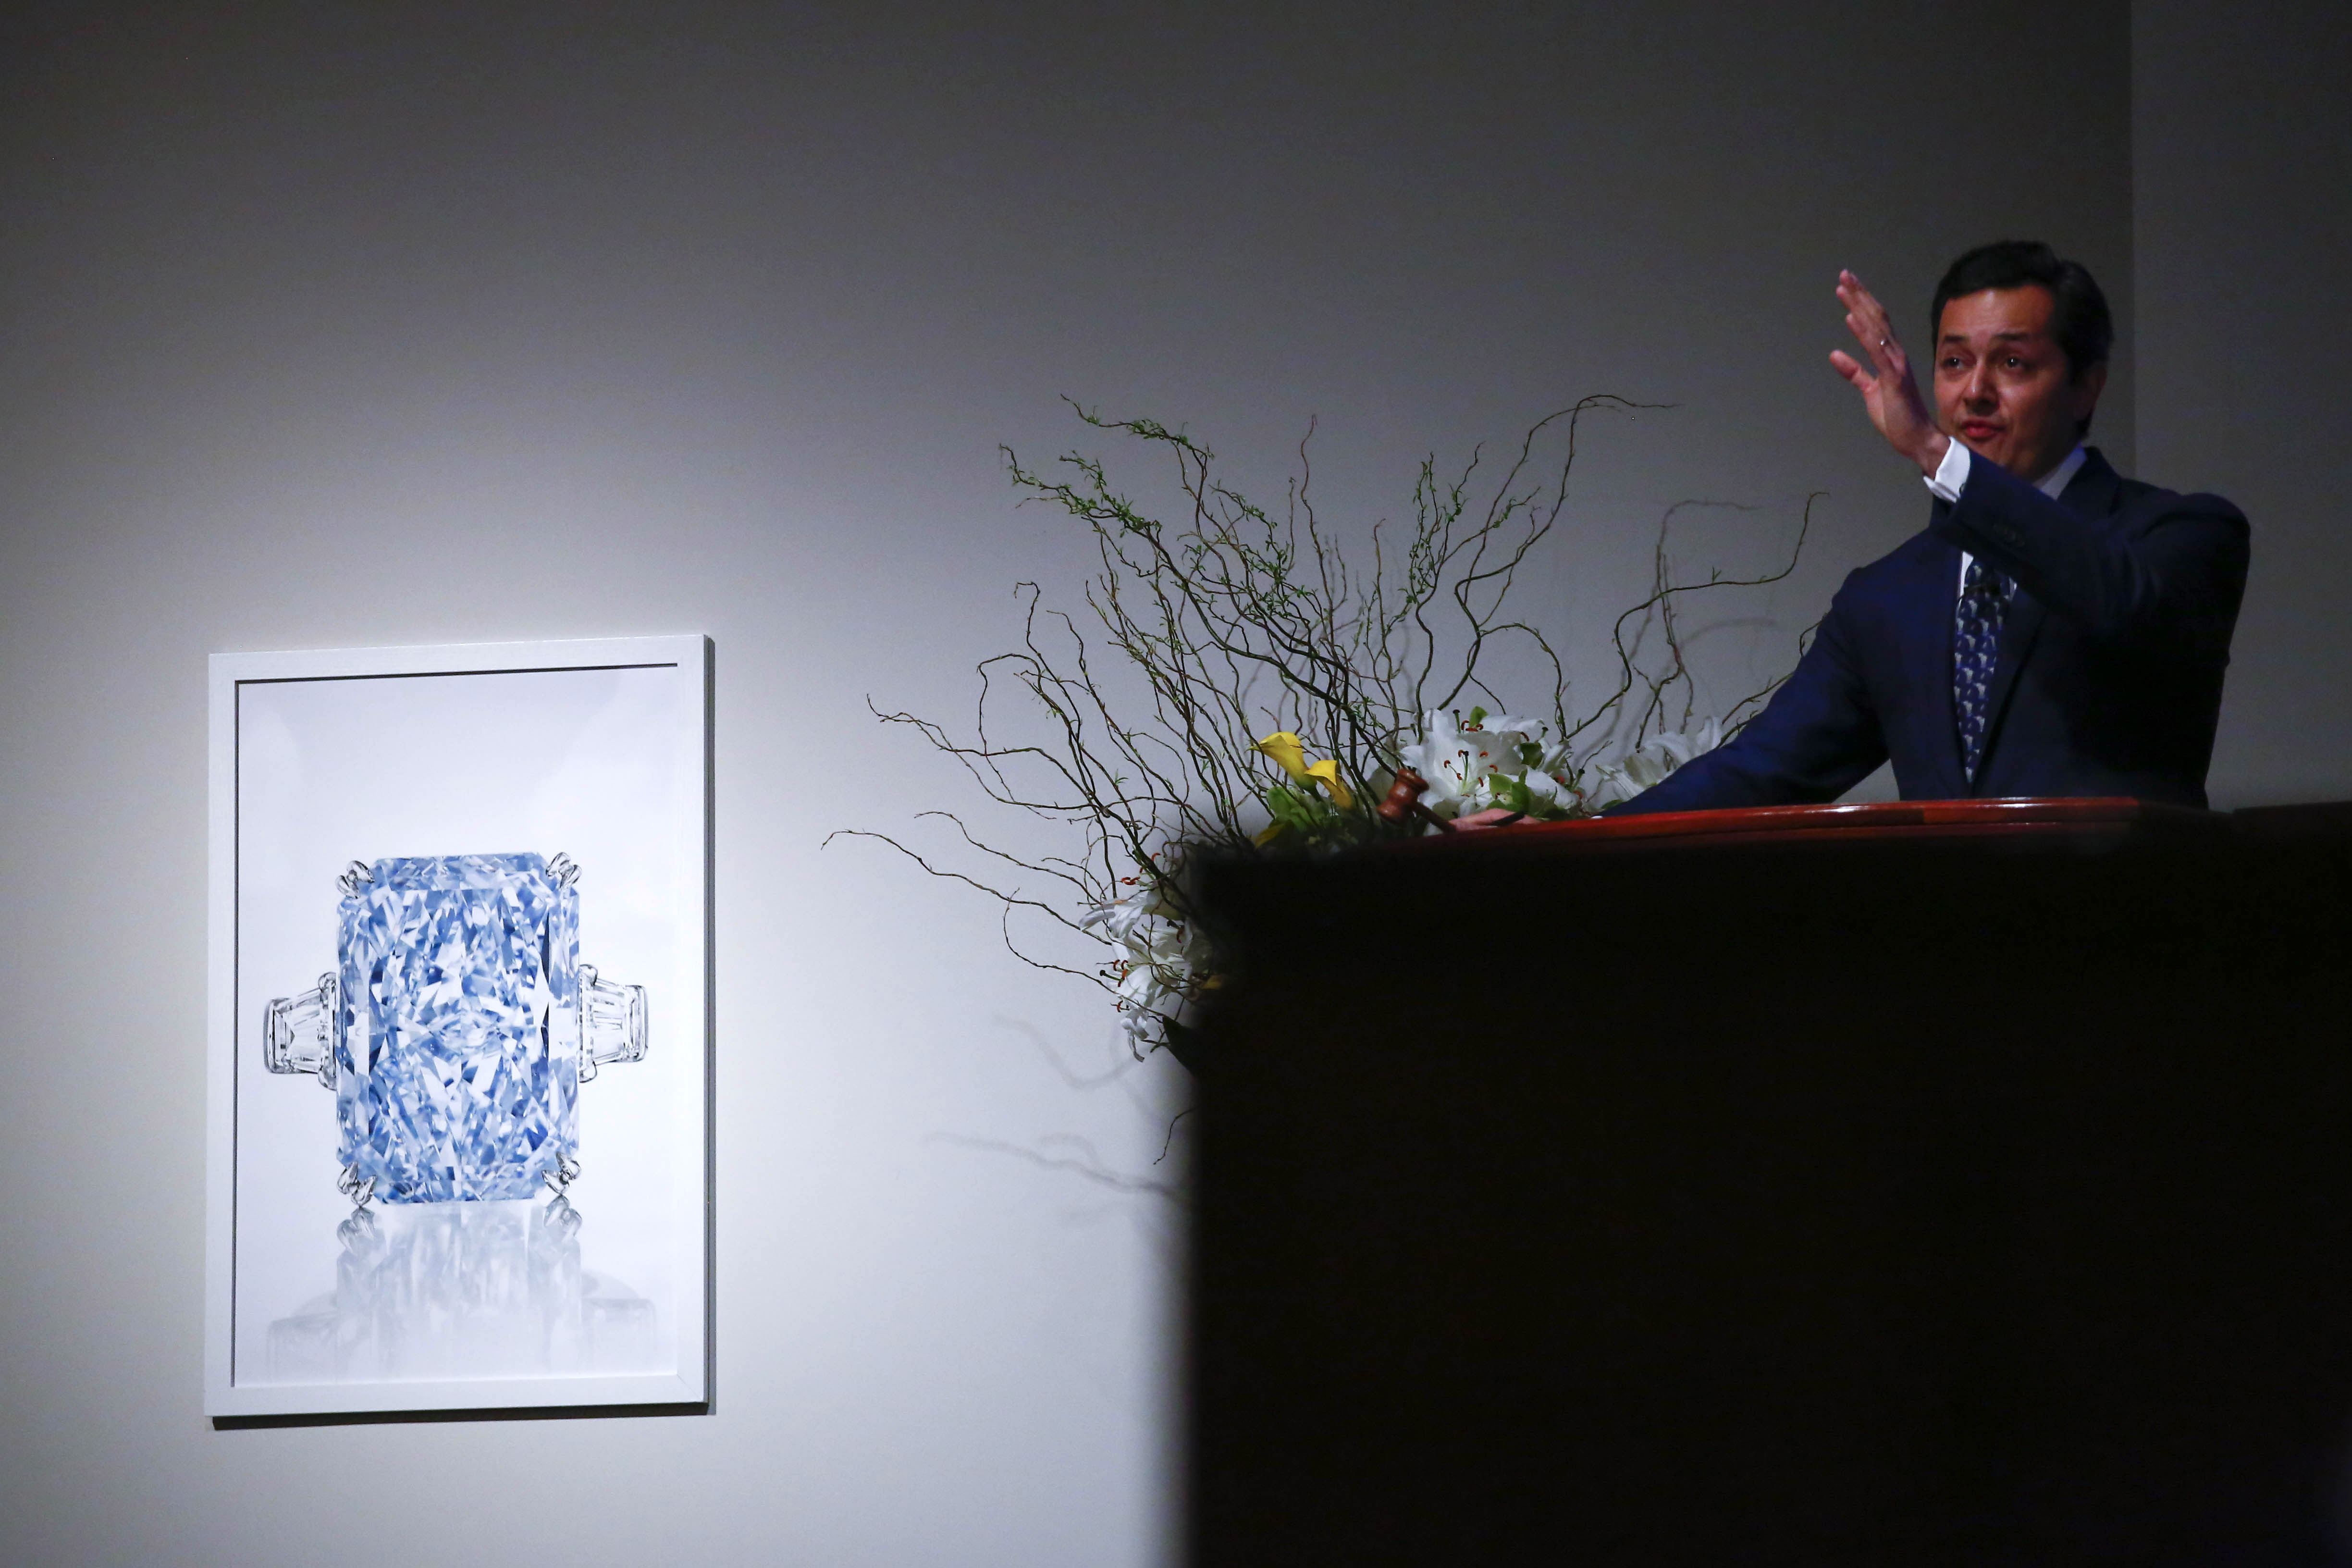 Rahul Kadakia, Christie's International Head of Jewelry takes bids during the auction Magnificent Jewels and The Cullinan Dream (L) at Christie's in New York, June 9, 2016. The Cullinan Dream is the largest Fancy Intense Blue diamond at auction, weighing 24.18 carats. / AFP PHOTO / KENA BETANCUR / RESTRICTED TO EDITORIAL USE - MANDATORY MENTION OF THE ARTIST UPON PUBLICATION - TO ILLUSTRATE THE EVENT AS SPECIFIED IN THE CAPTION